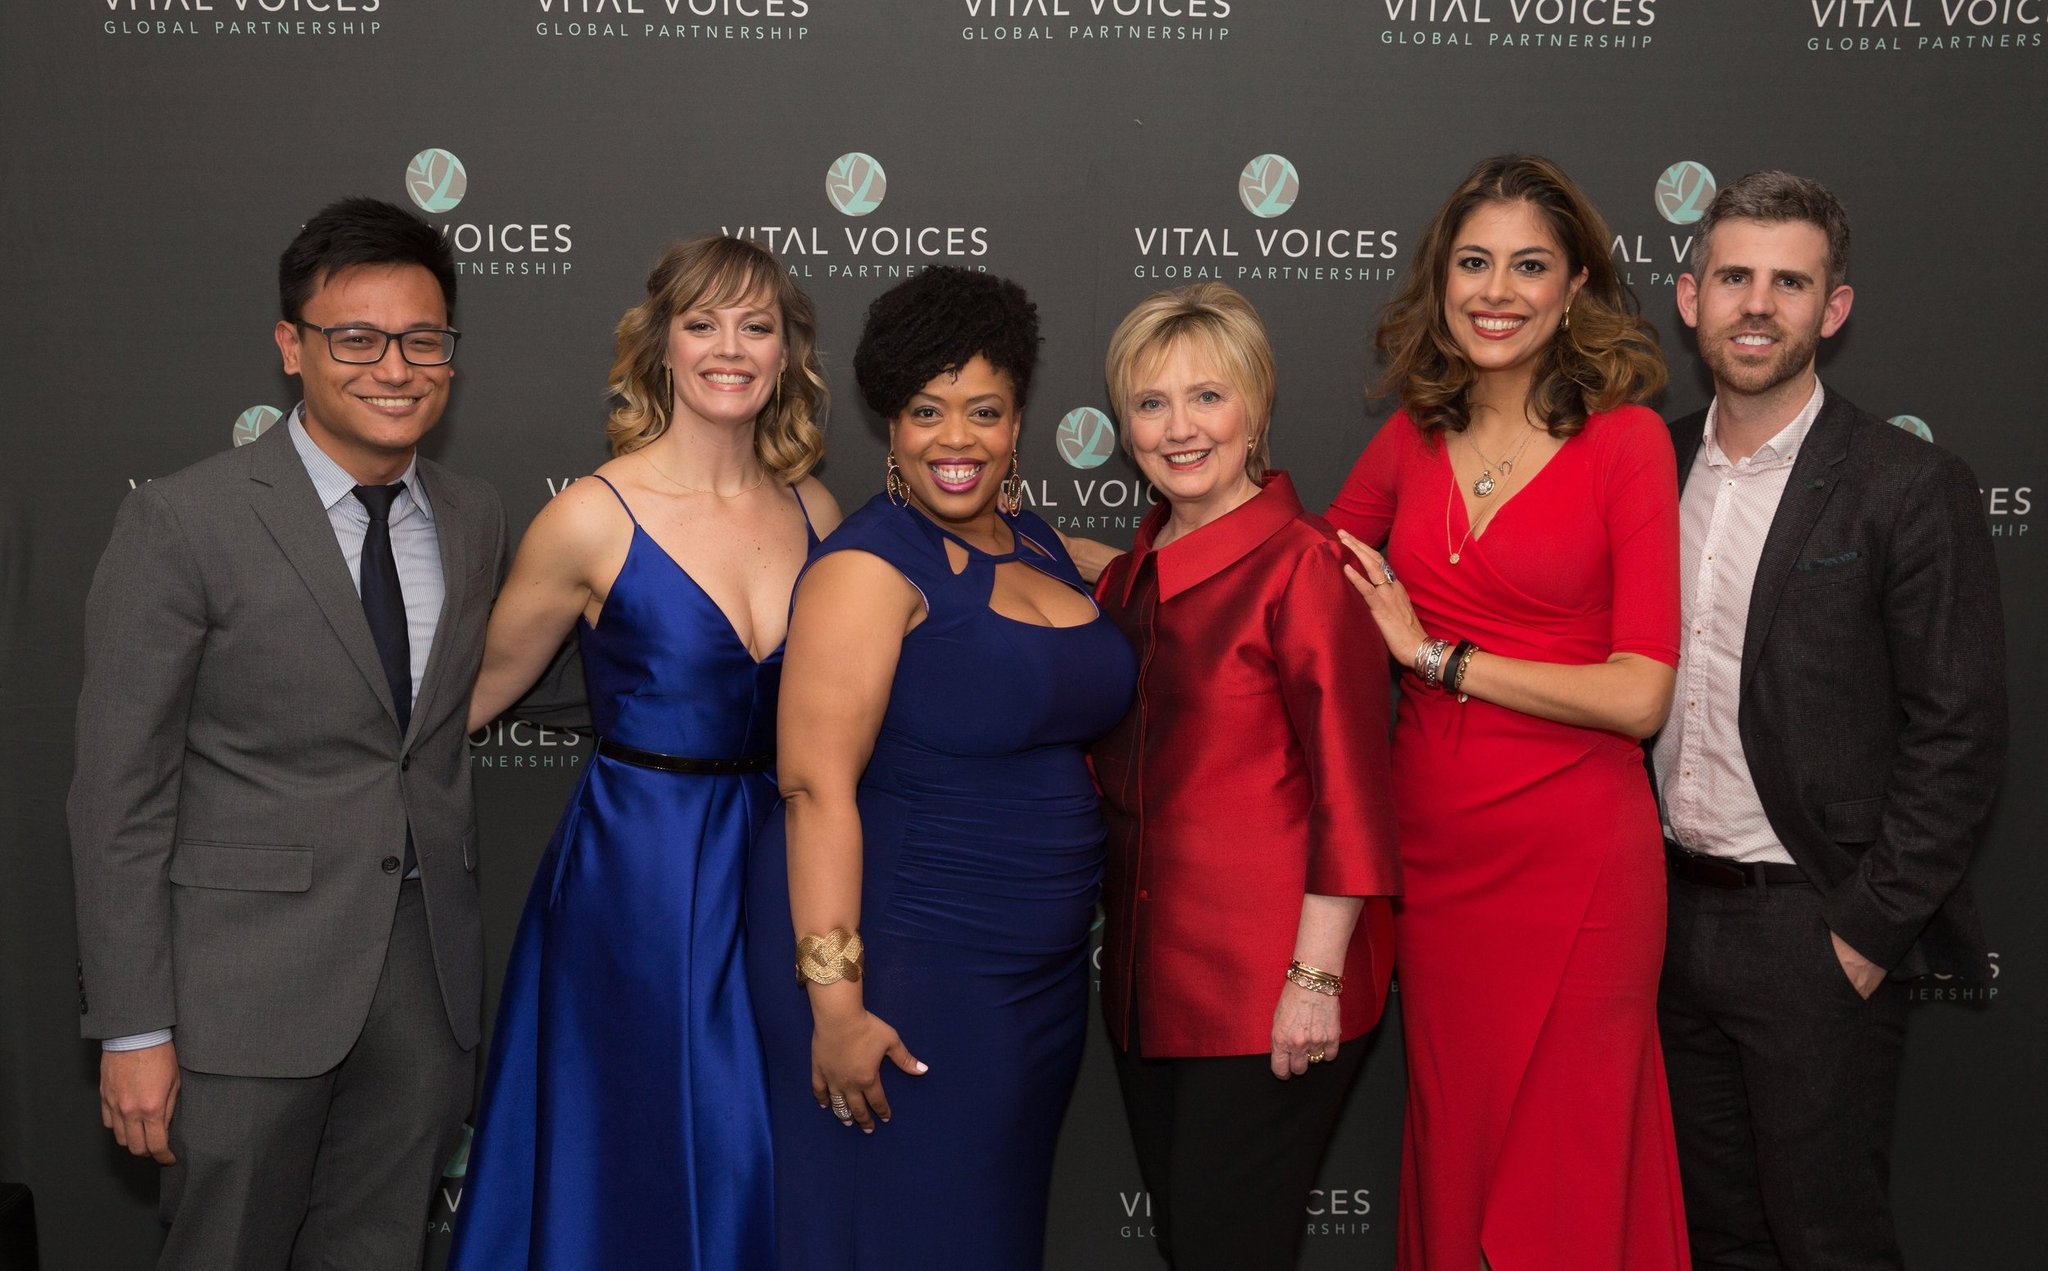 Vital Voices Global Leadership Awards